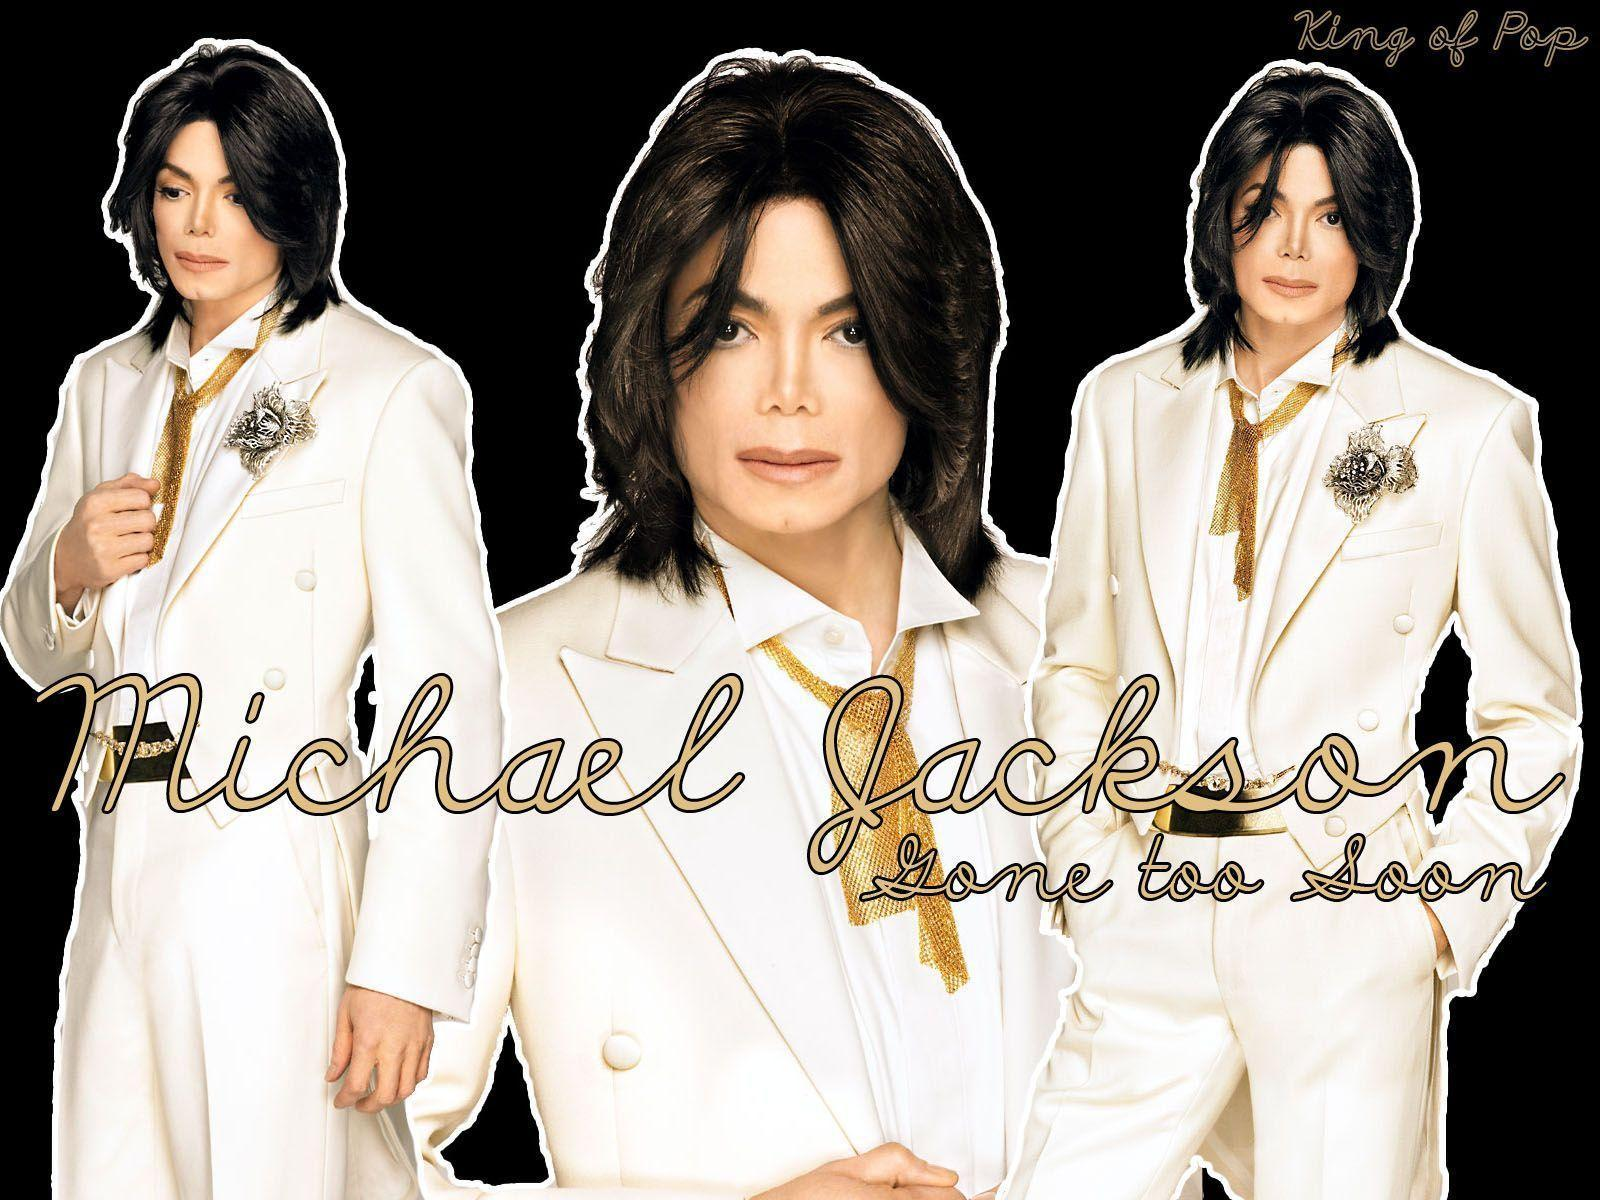 MJ wallpaper - ritik's club Wallpaper (27894641) - Fanpop